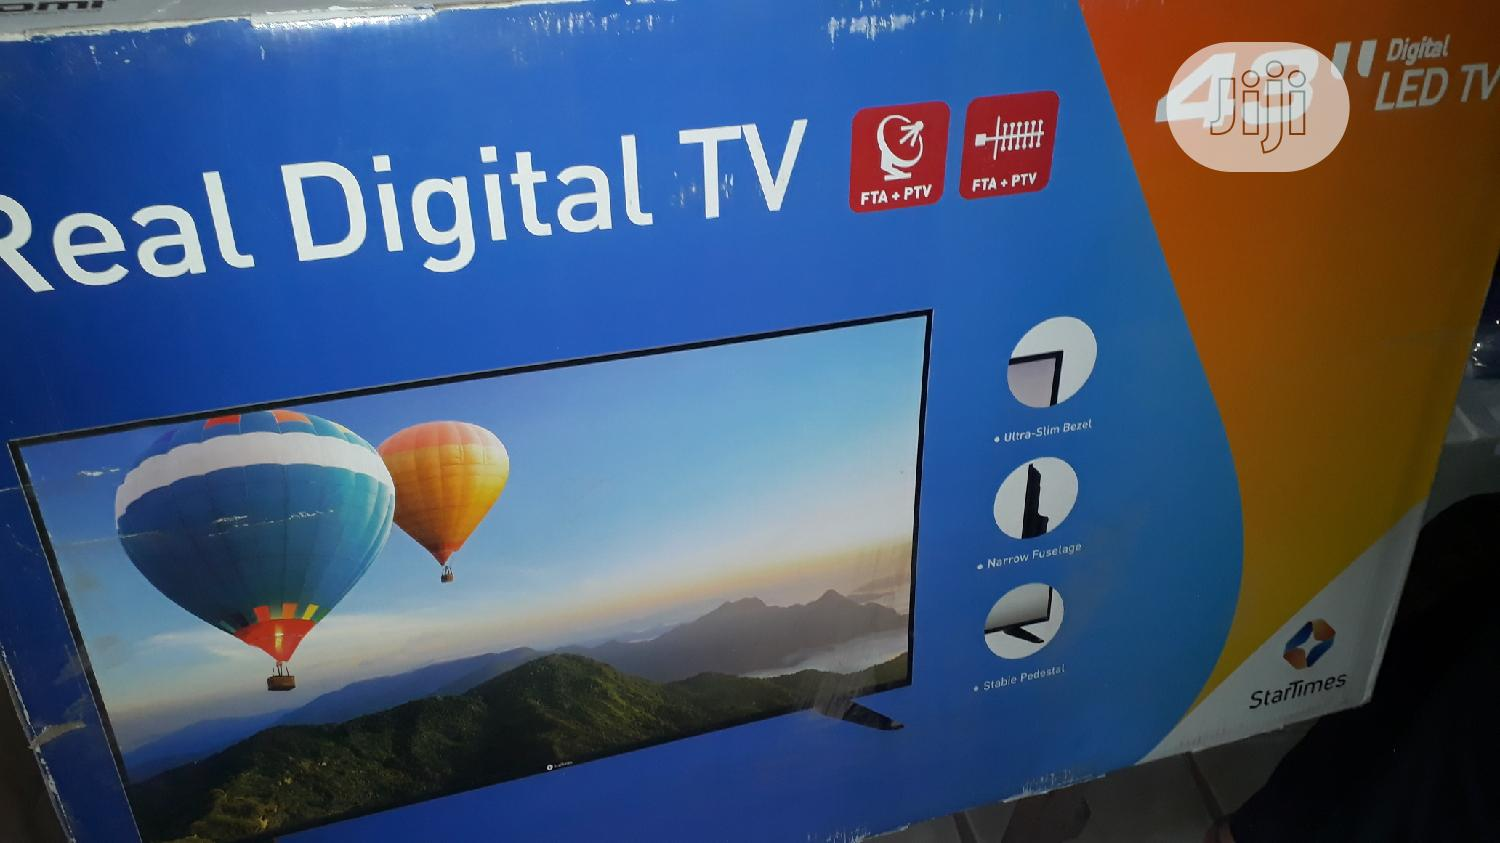 Startimes Led Tv 43 Inches